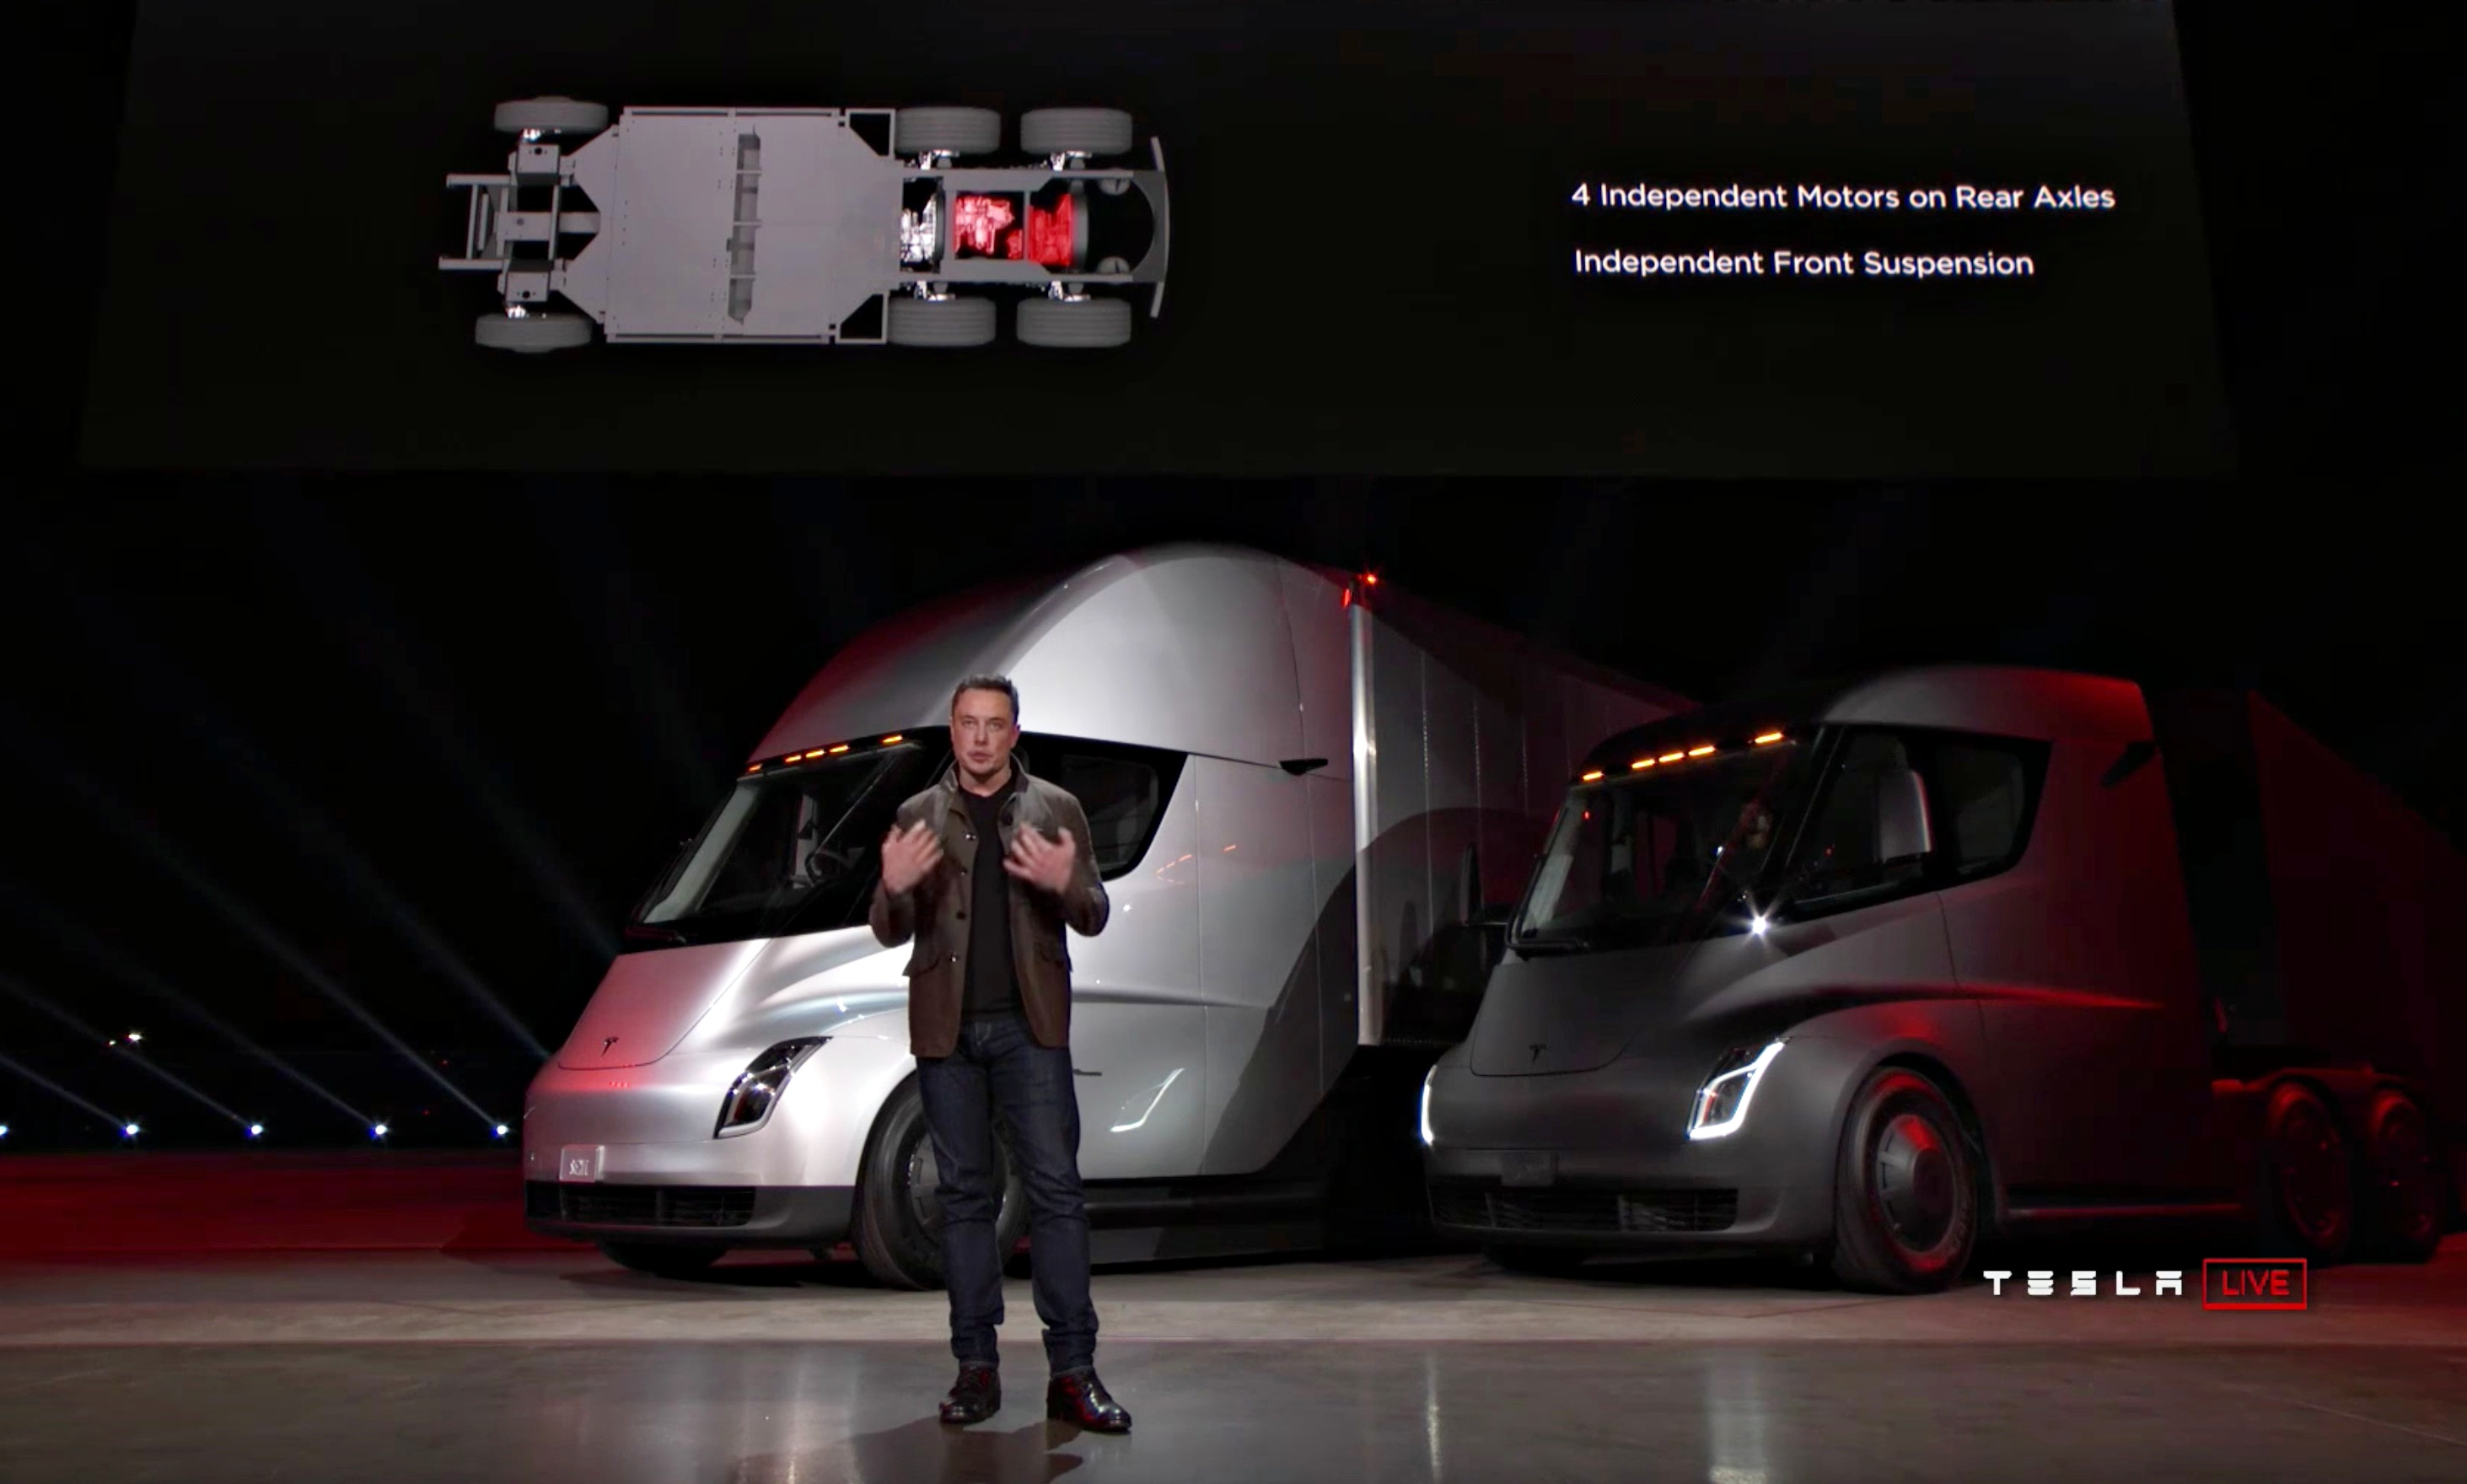 tesla-semi-4-motors-rear-axles